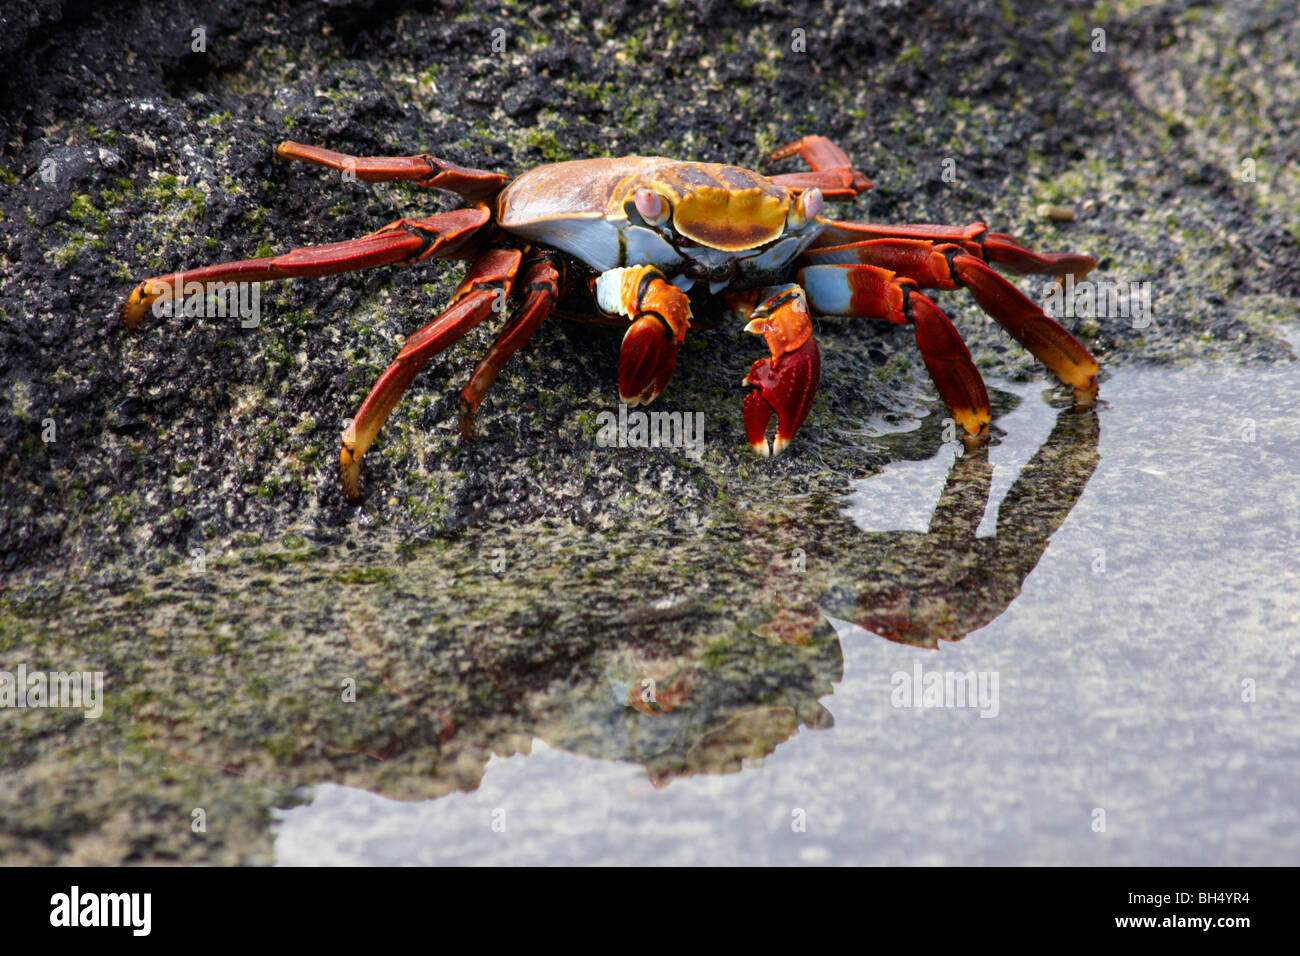 Sally lightfoot crab (Grapsus grapsus) heading for the sea at Elizabeth Bay, Isabela Island. - Stock Image